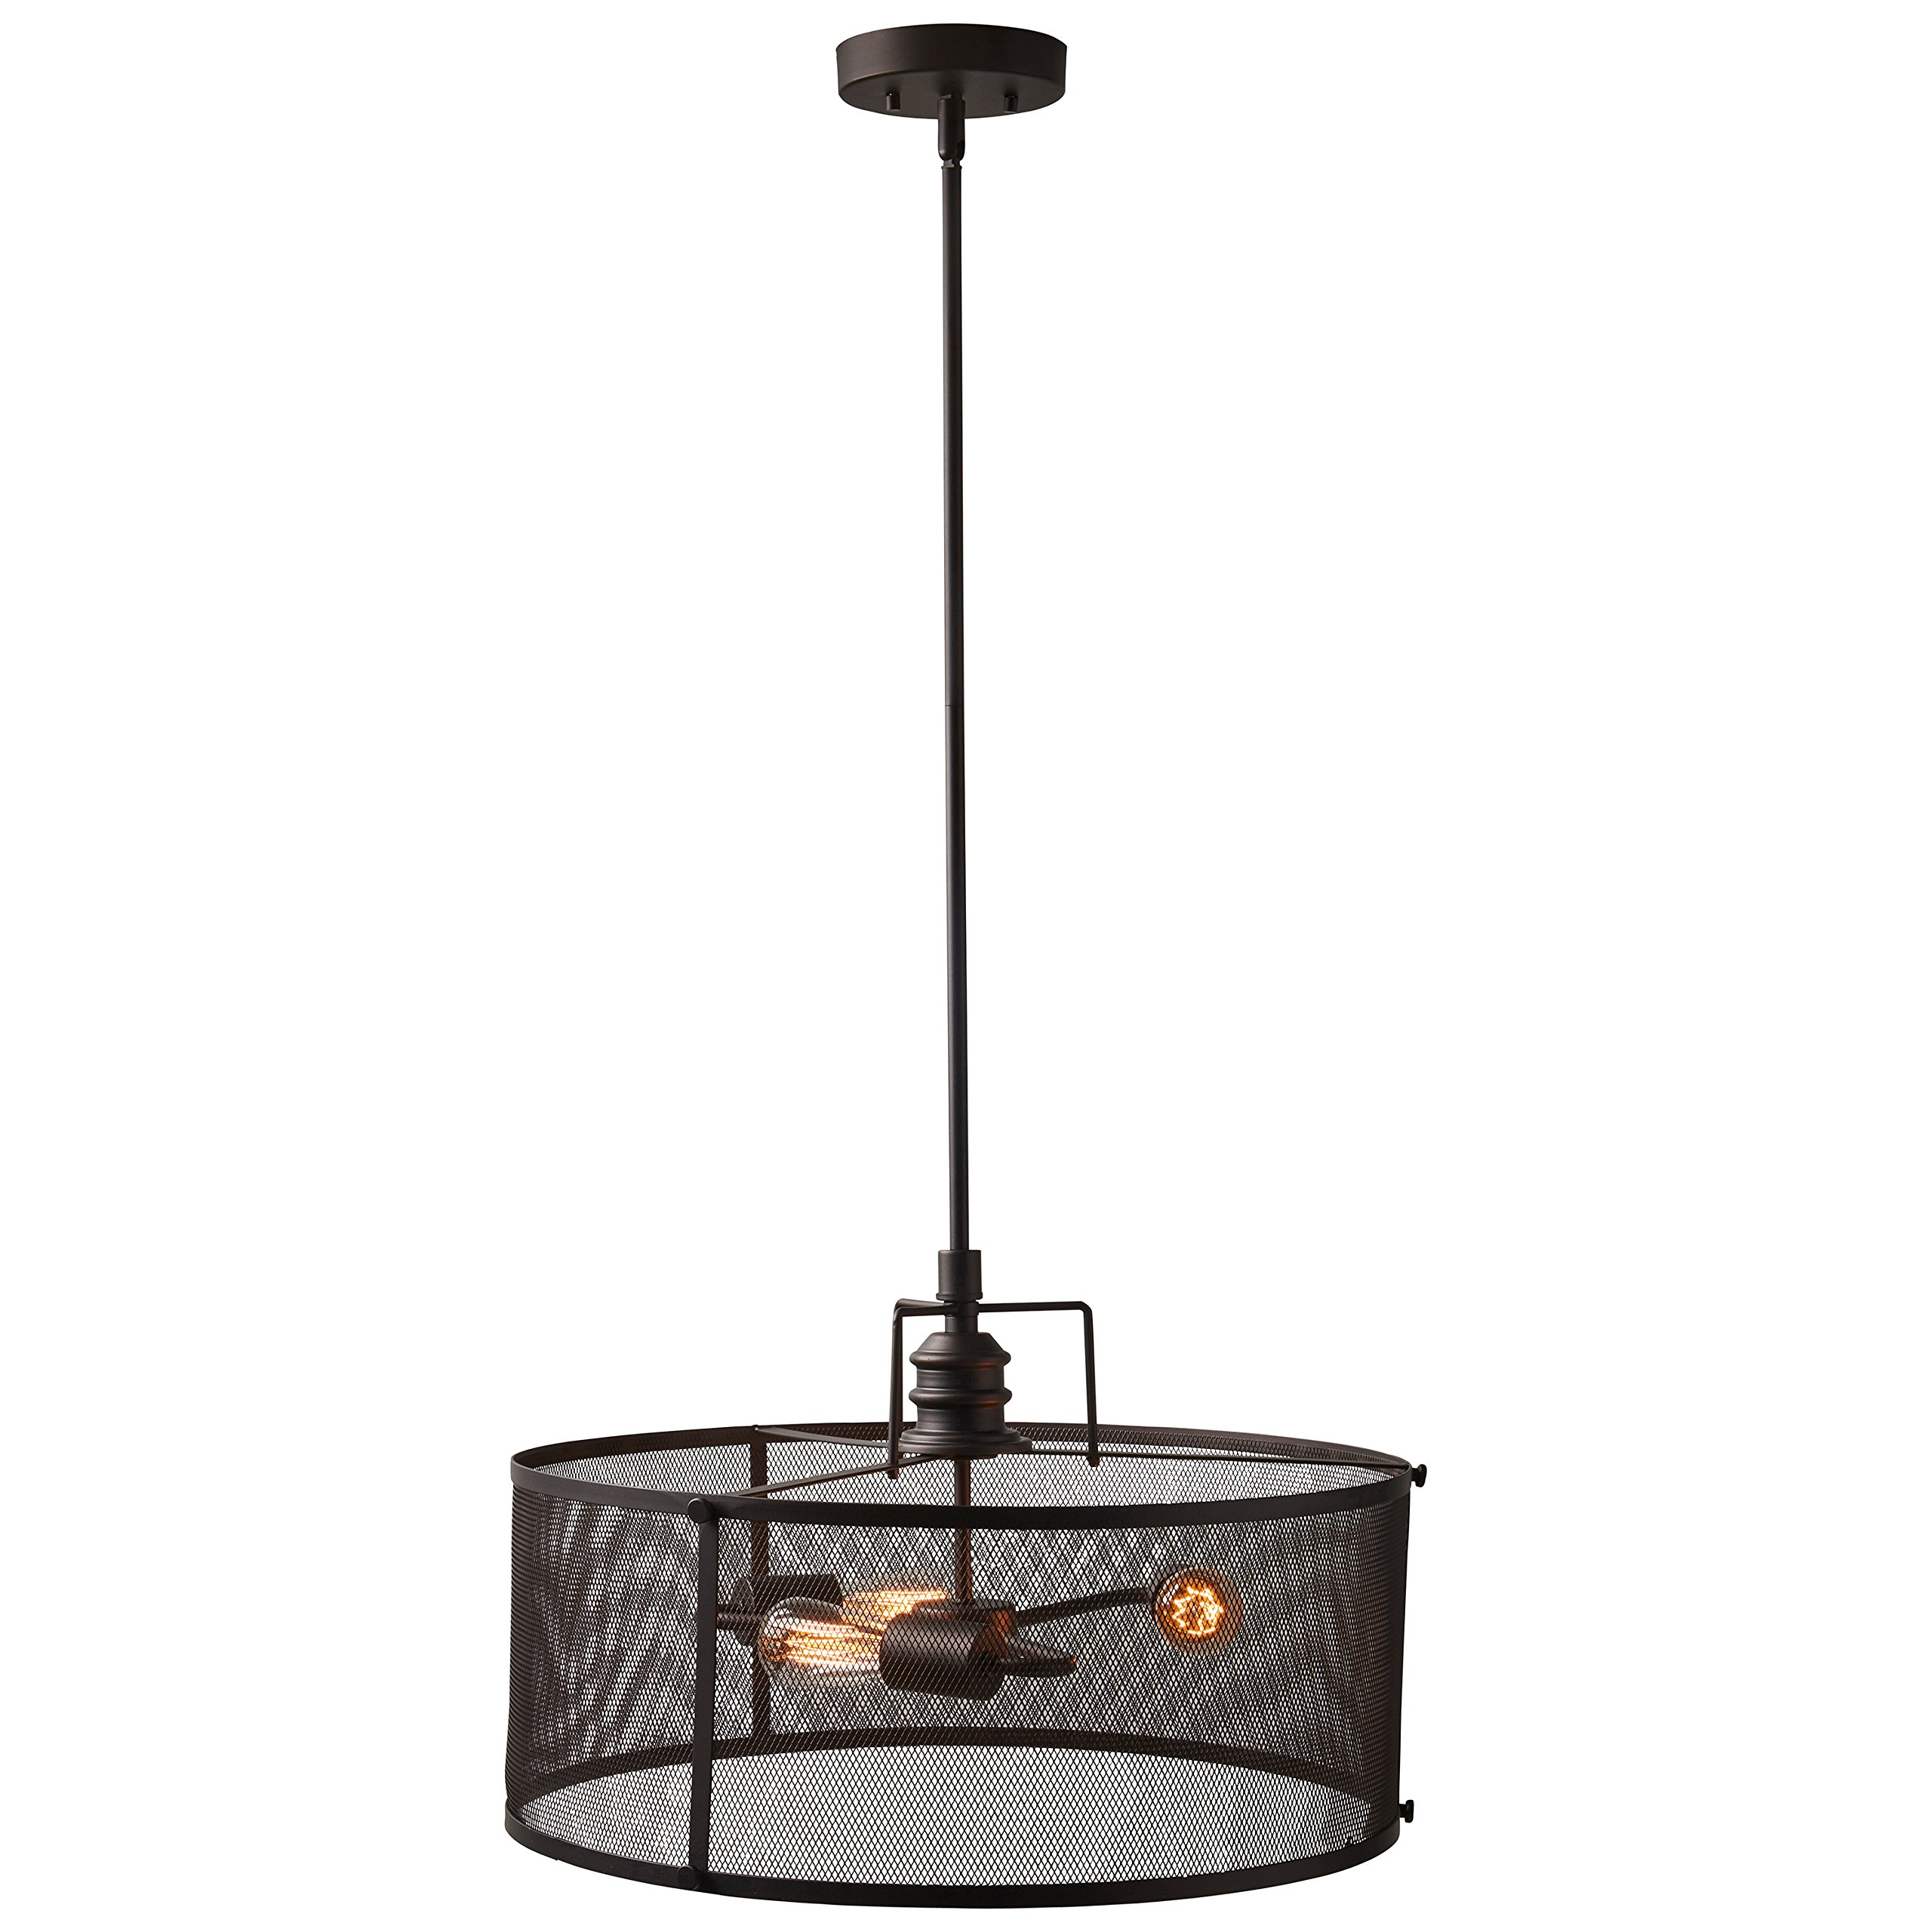 Stone & Beam Hobbs Industrial Light With Bulbs, 20.5''-62.5'' H, Oil-Rubbed Bronze